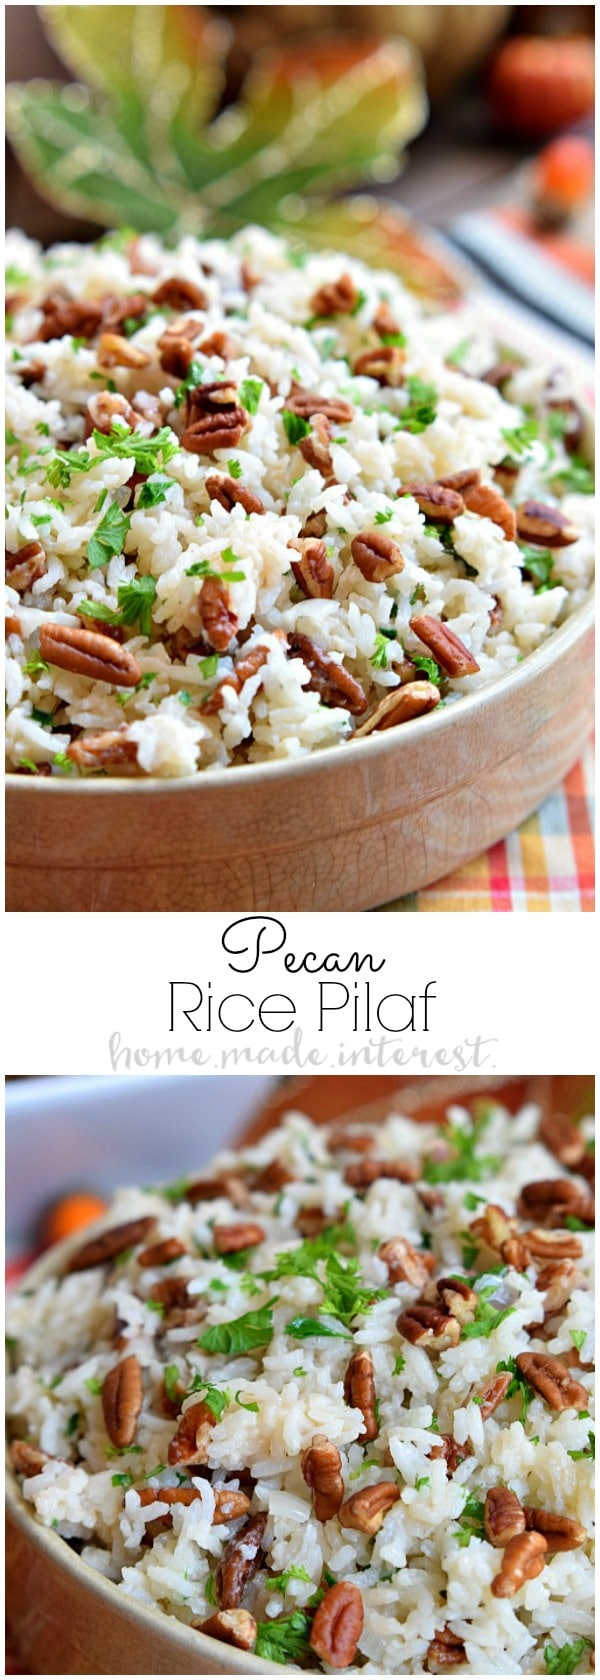 This Pecan Rice Pilaf recipe is an easy Thanksgiving side dish made with flavorful rice and buttery toasted pecans. A simple rice pilaf recipe for fall. This is an easy side dish for busy weeknights or a simple addition to Thanksgiving dinner.